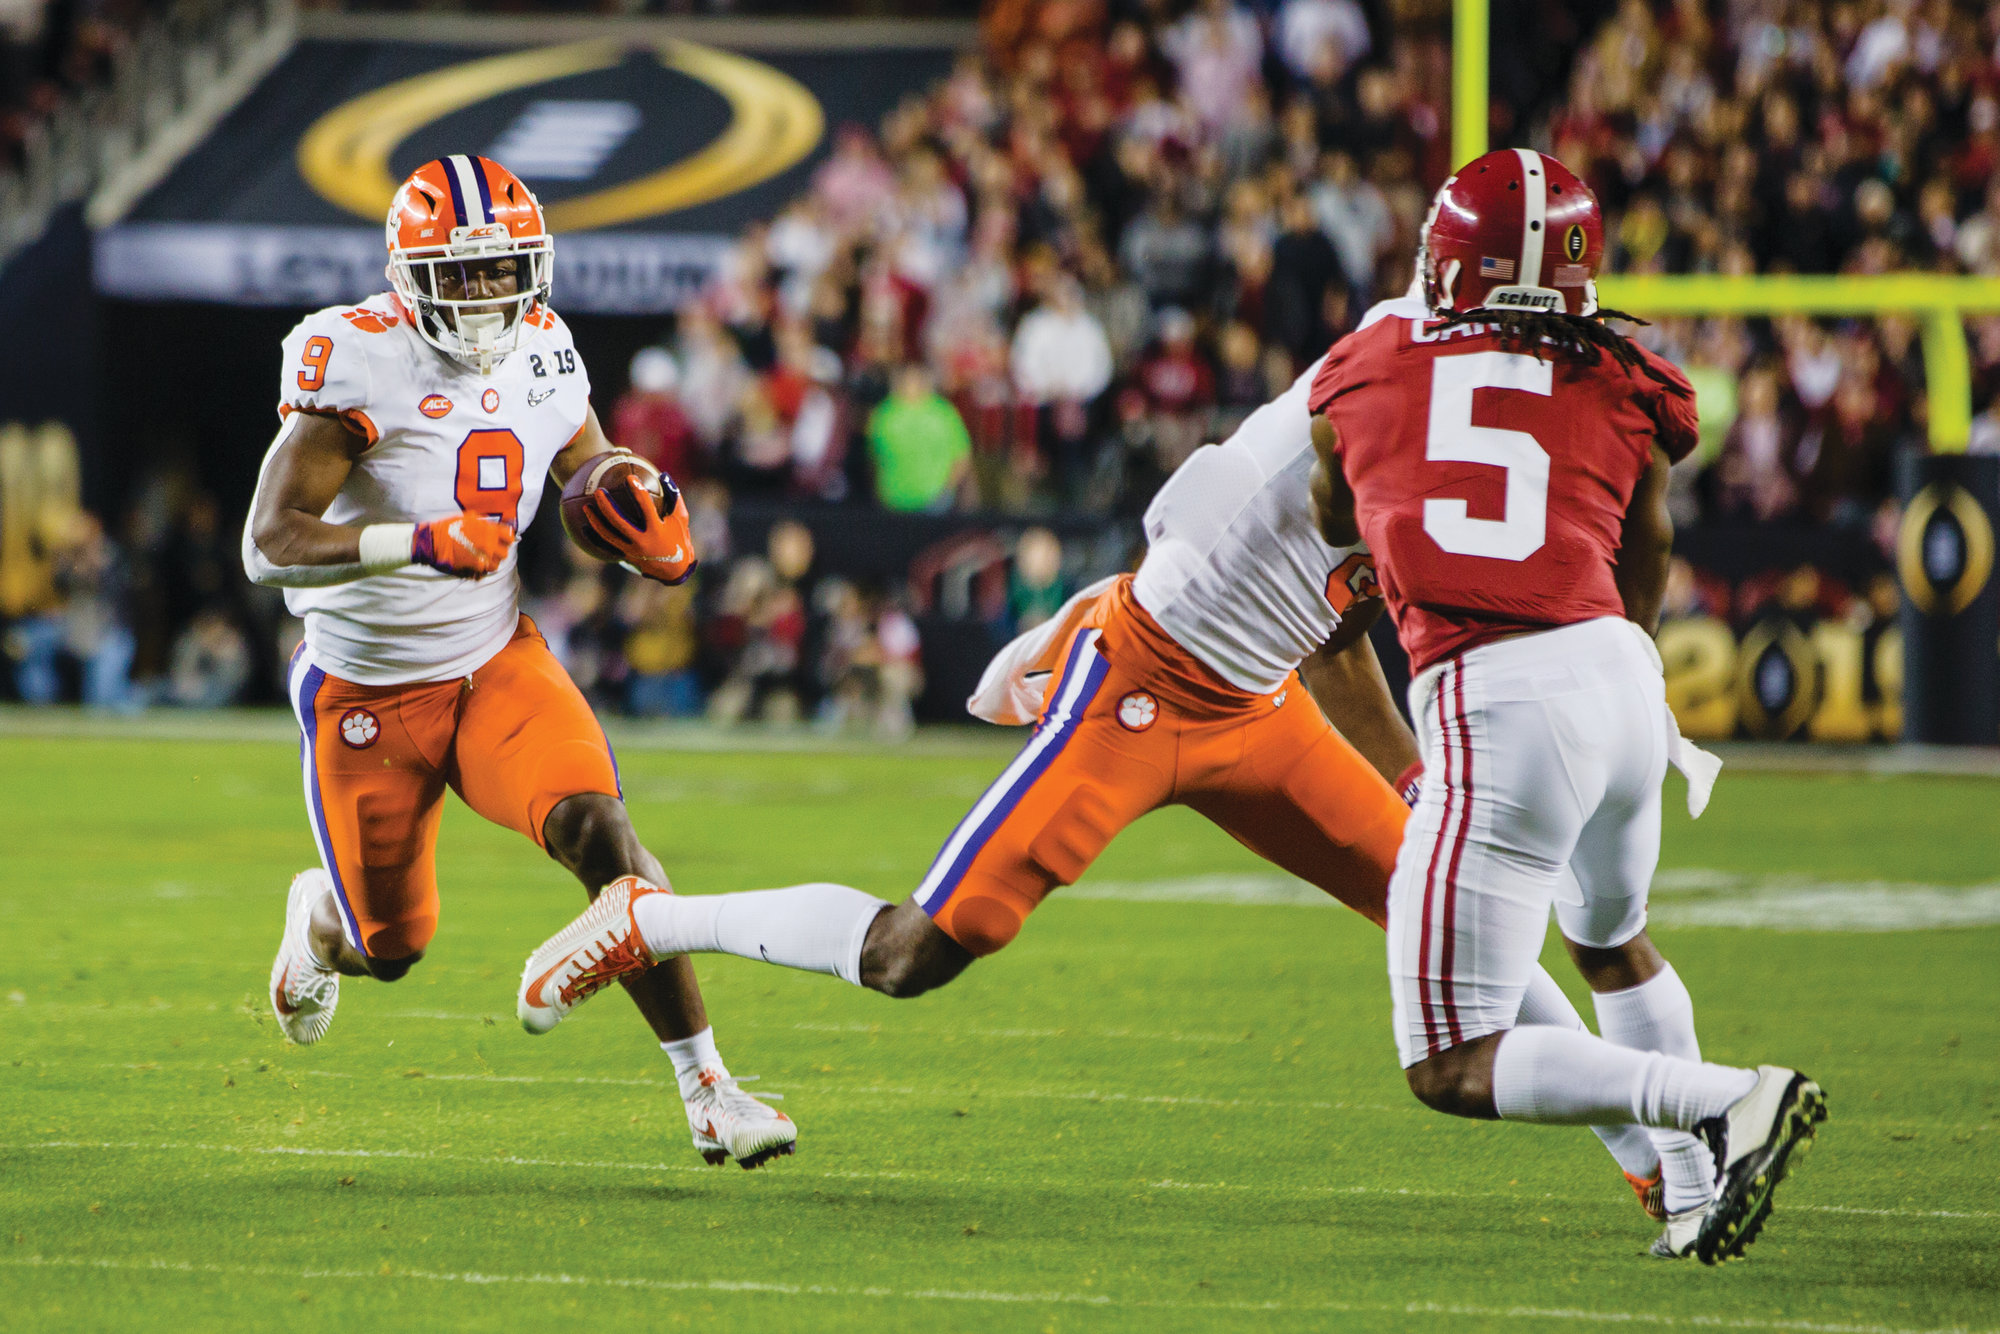 Clemson running back Travis Etienne (9) will return in 2019 to try to help the Tigers' to a fifth straight appearance in the College Football Playoff and to defend their national title. However, the Tigers may start out at No. 2 in the preseason poll behind Alabama despite handing the Crimson Tide one of their worst losses in a generation.